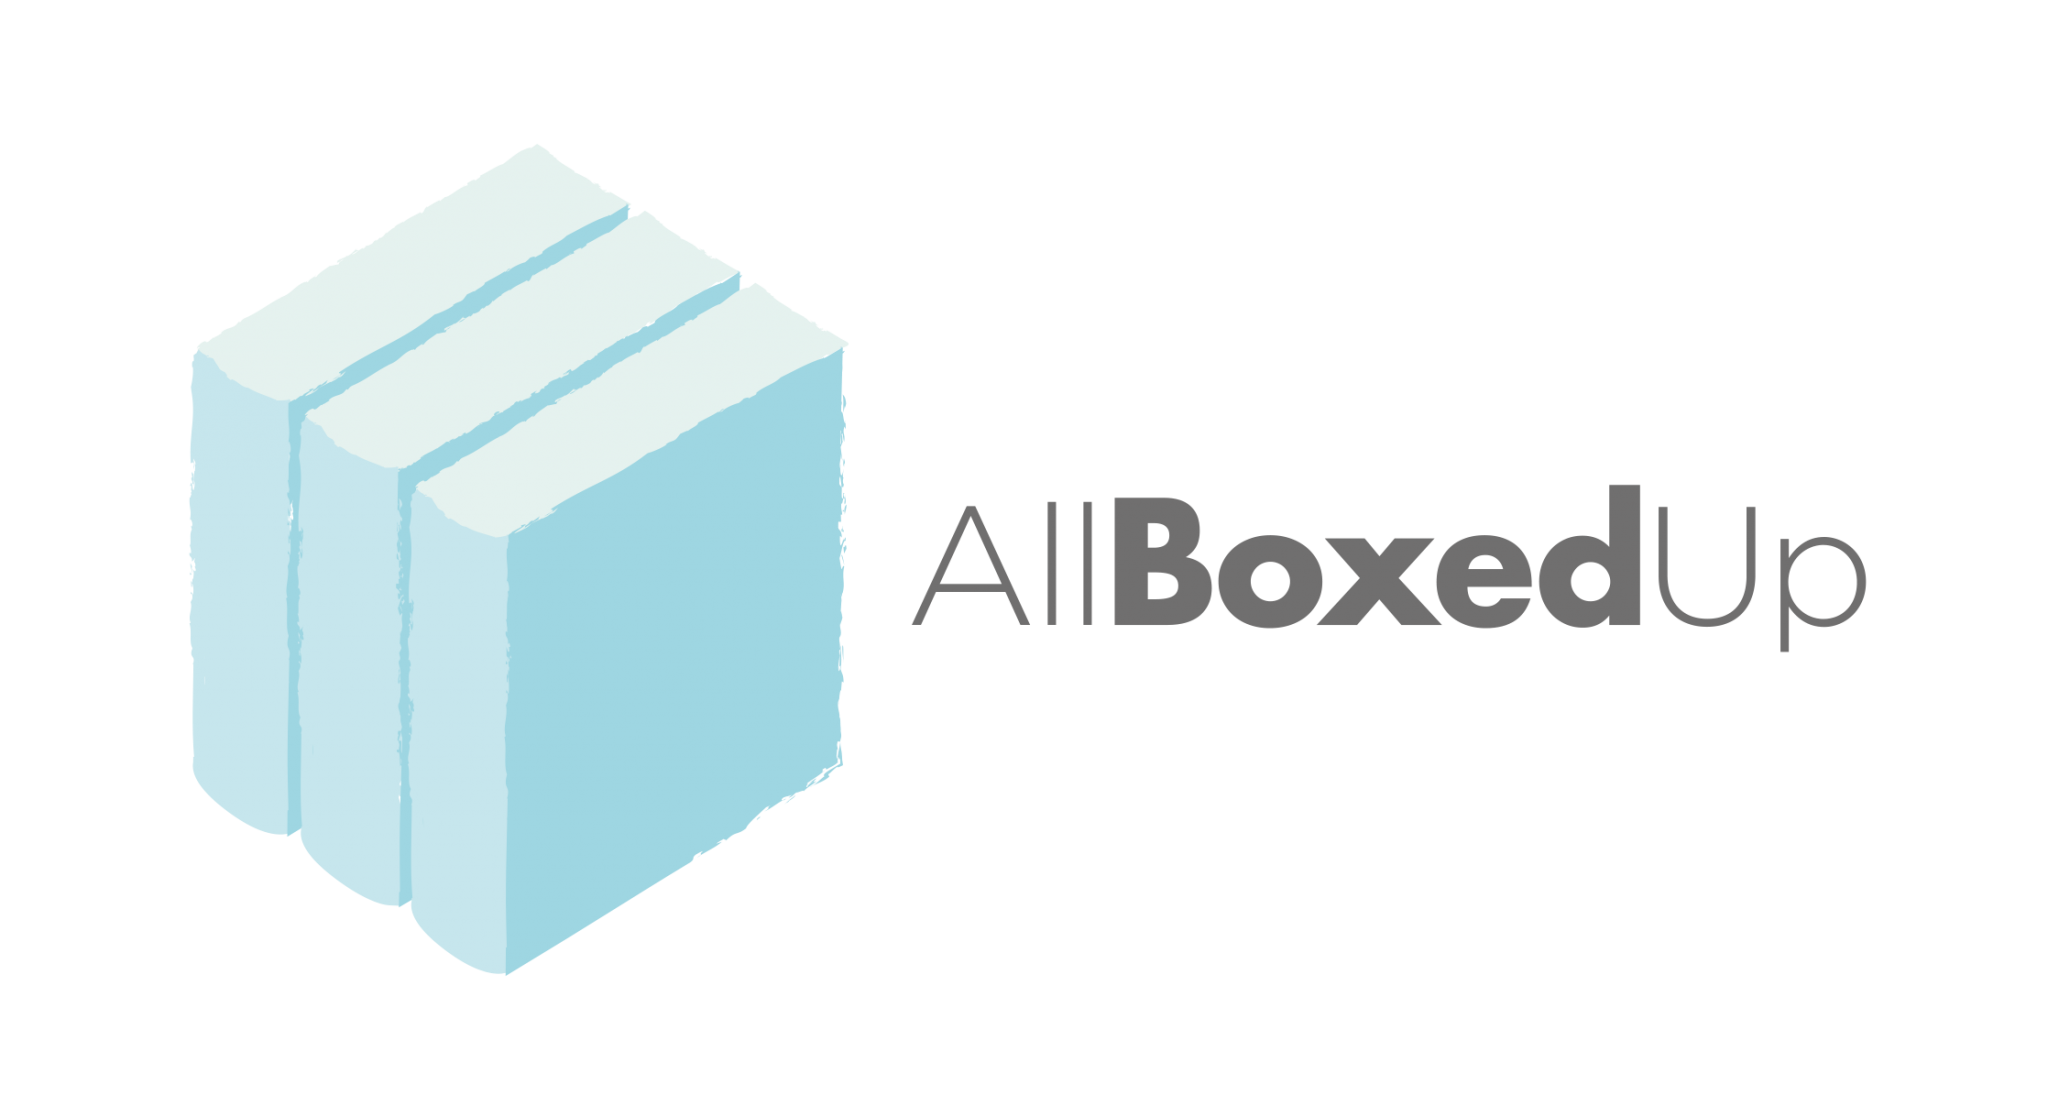 All-Boxed-Up-logo